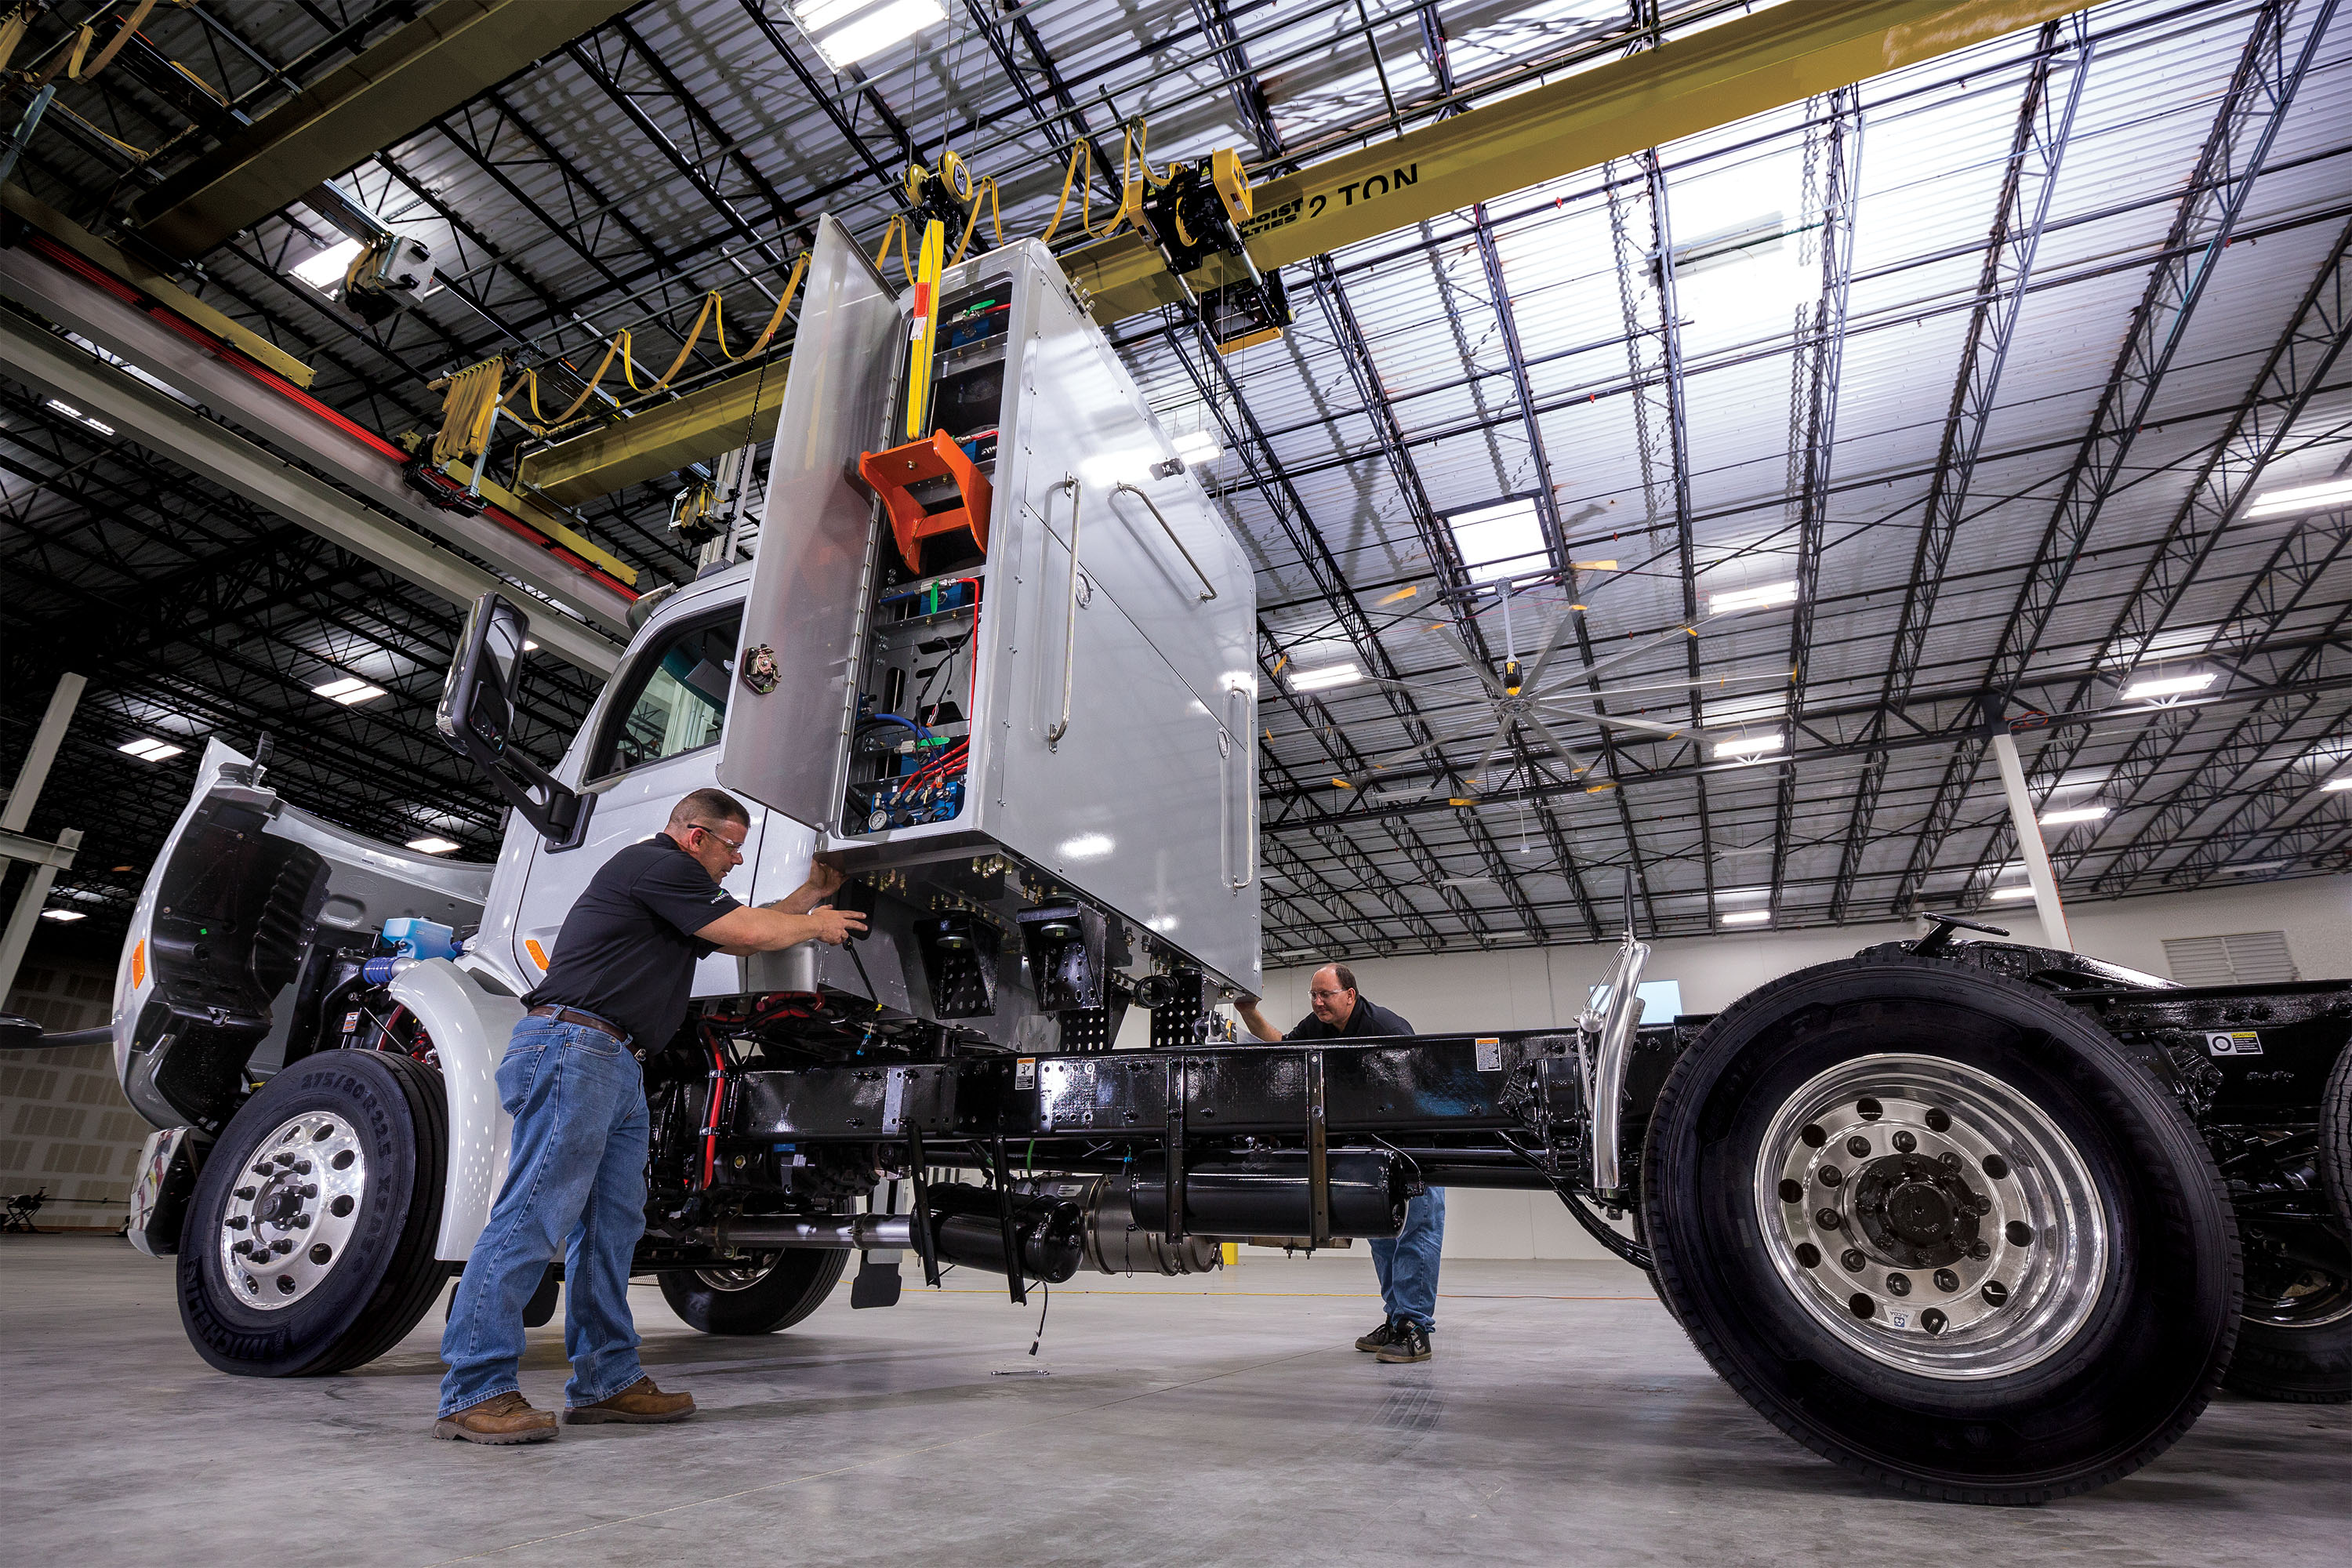 Rush Introduces Class 6-8 CNG Fuel System